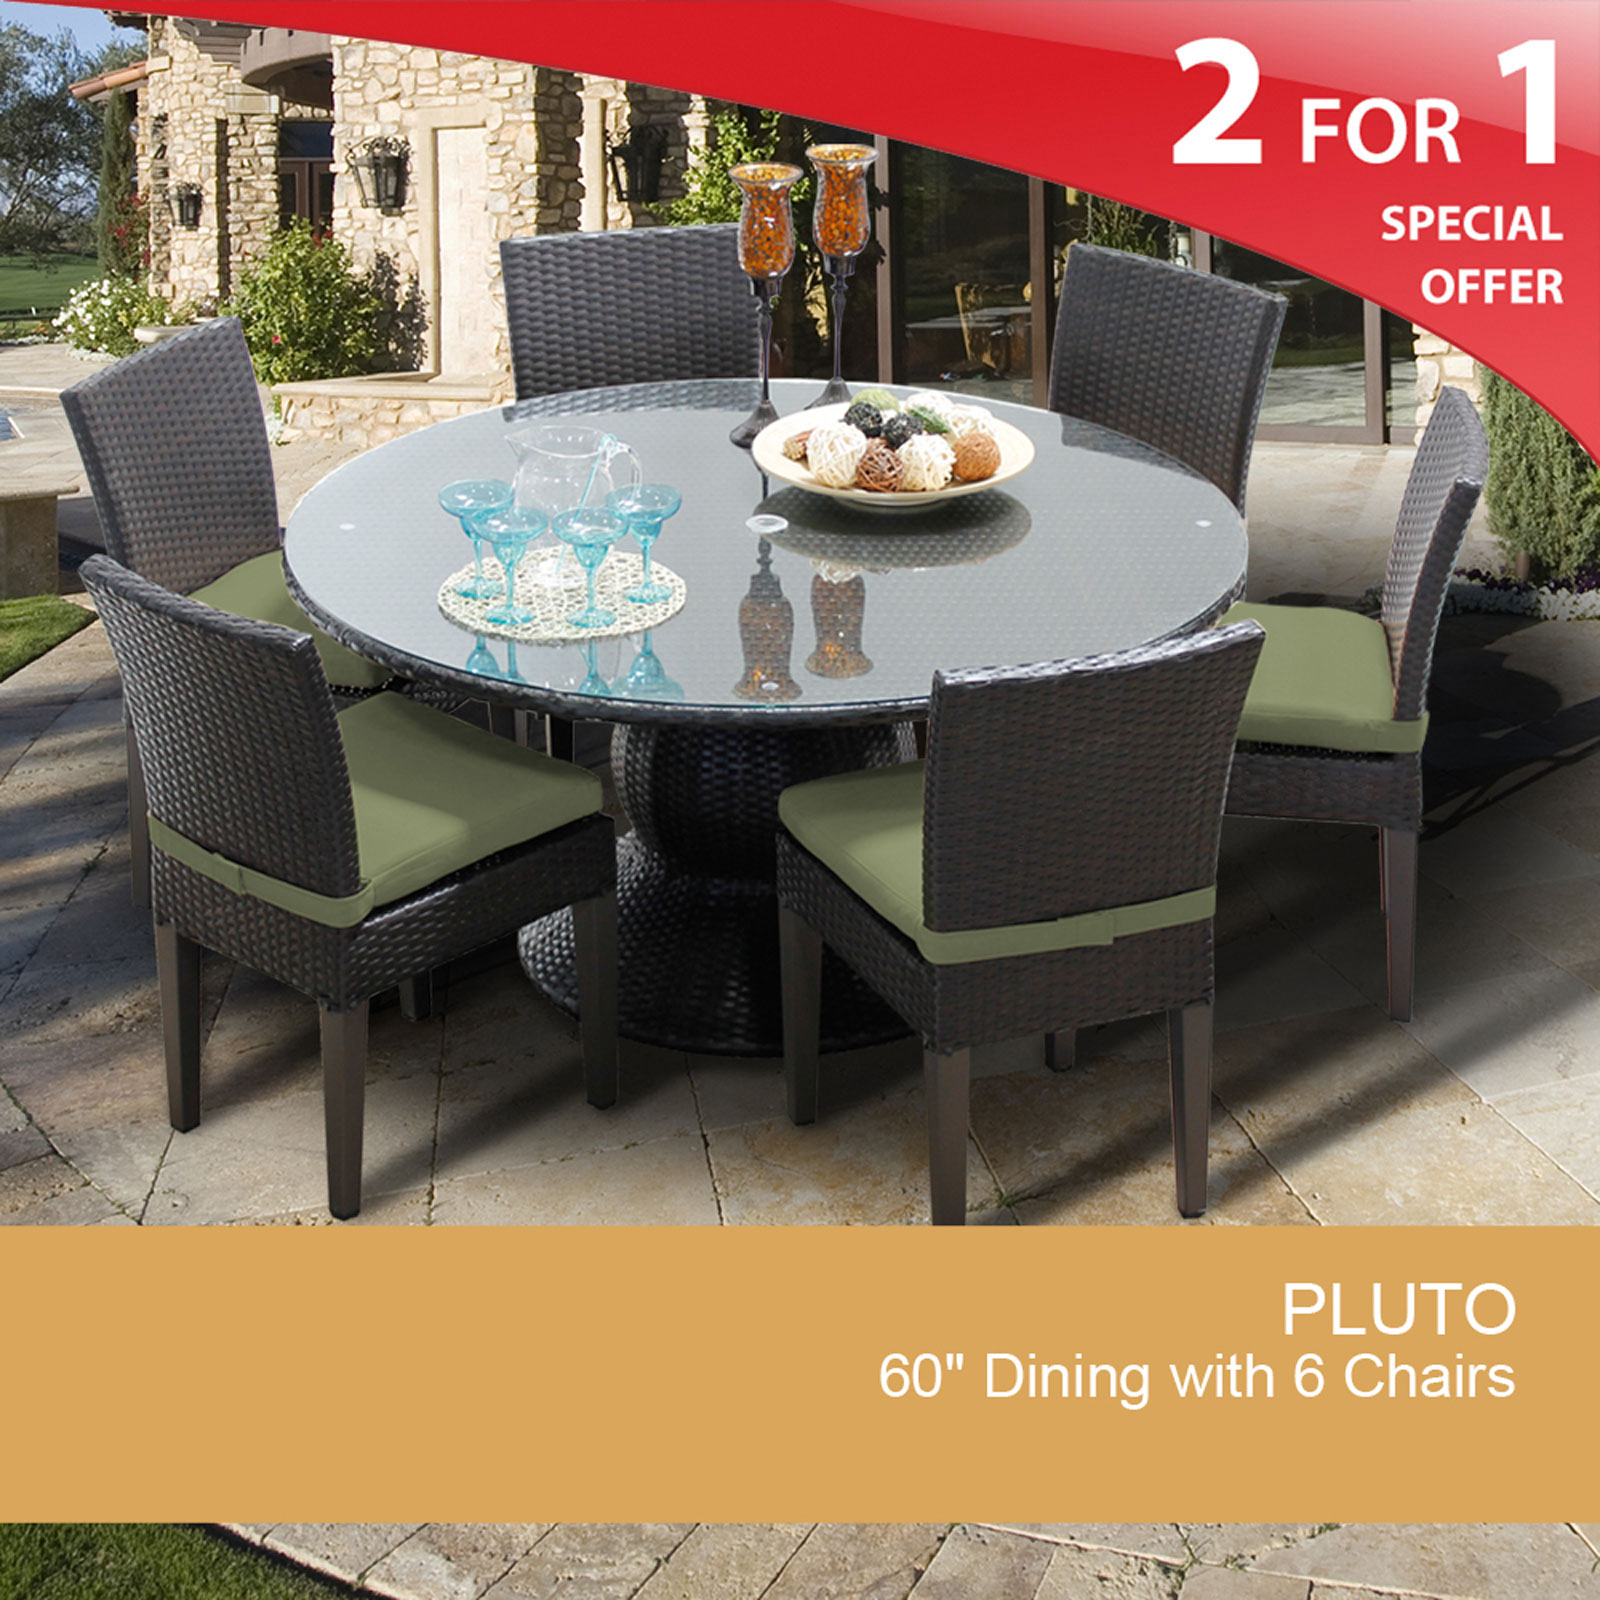 Pluto 60 Inch Outdoor Patio Dining Table With 6 Chairs - Design Furnishings